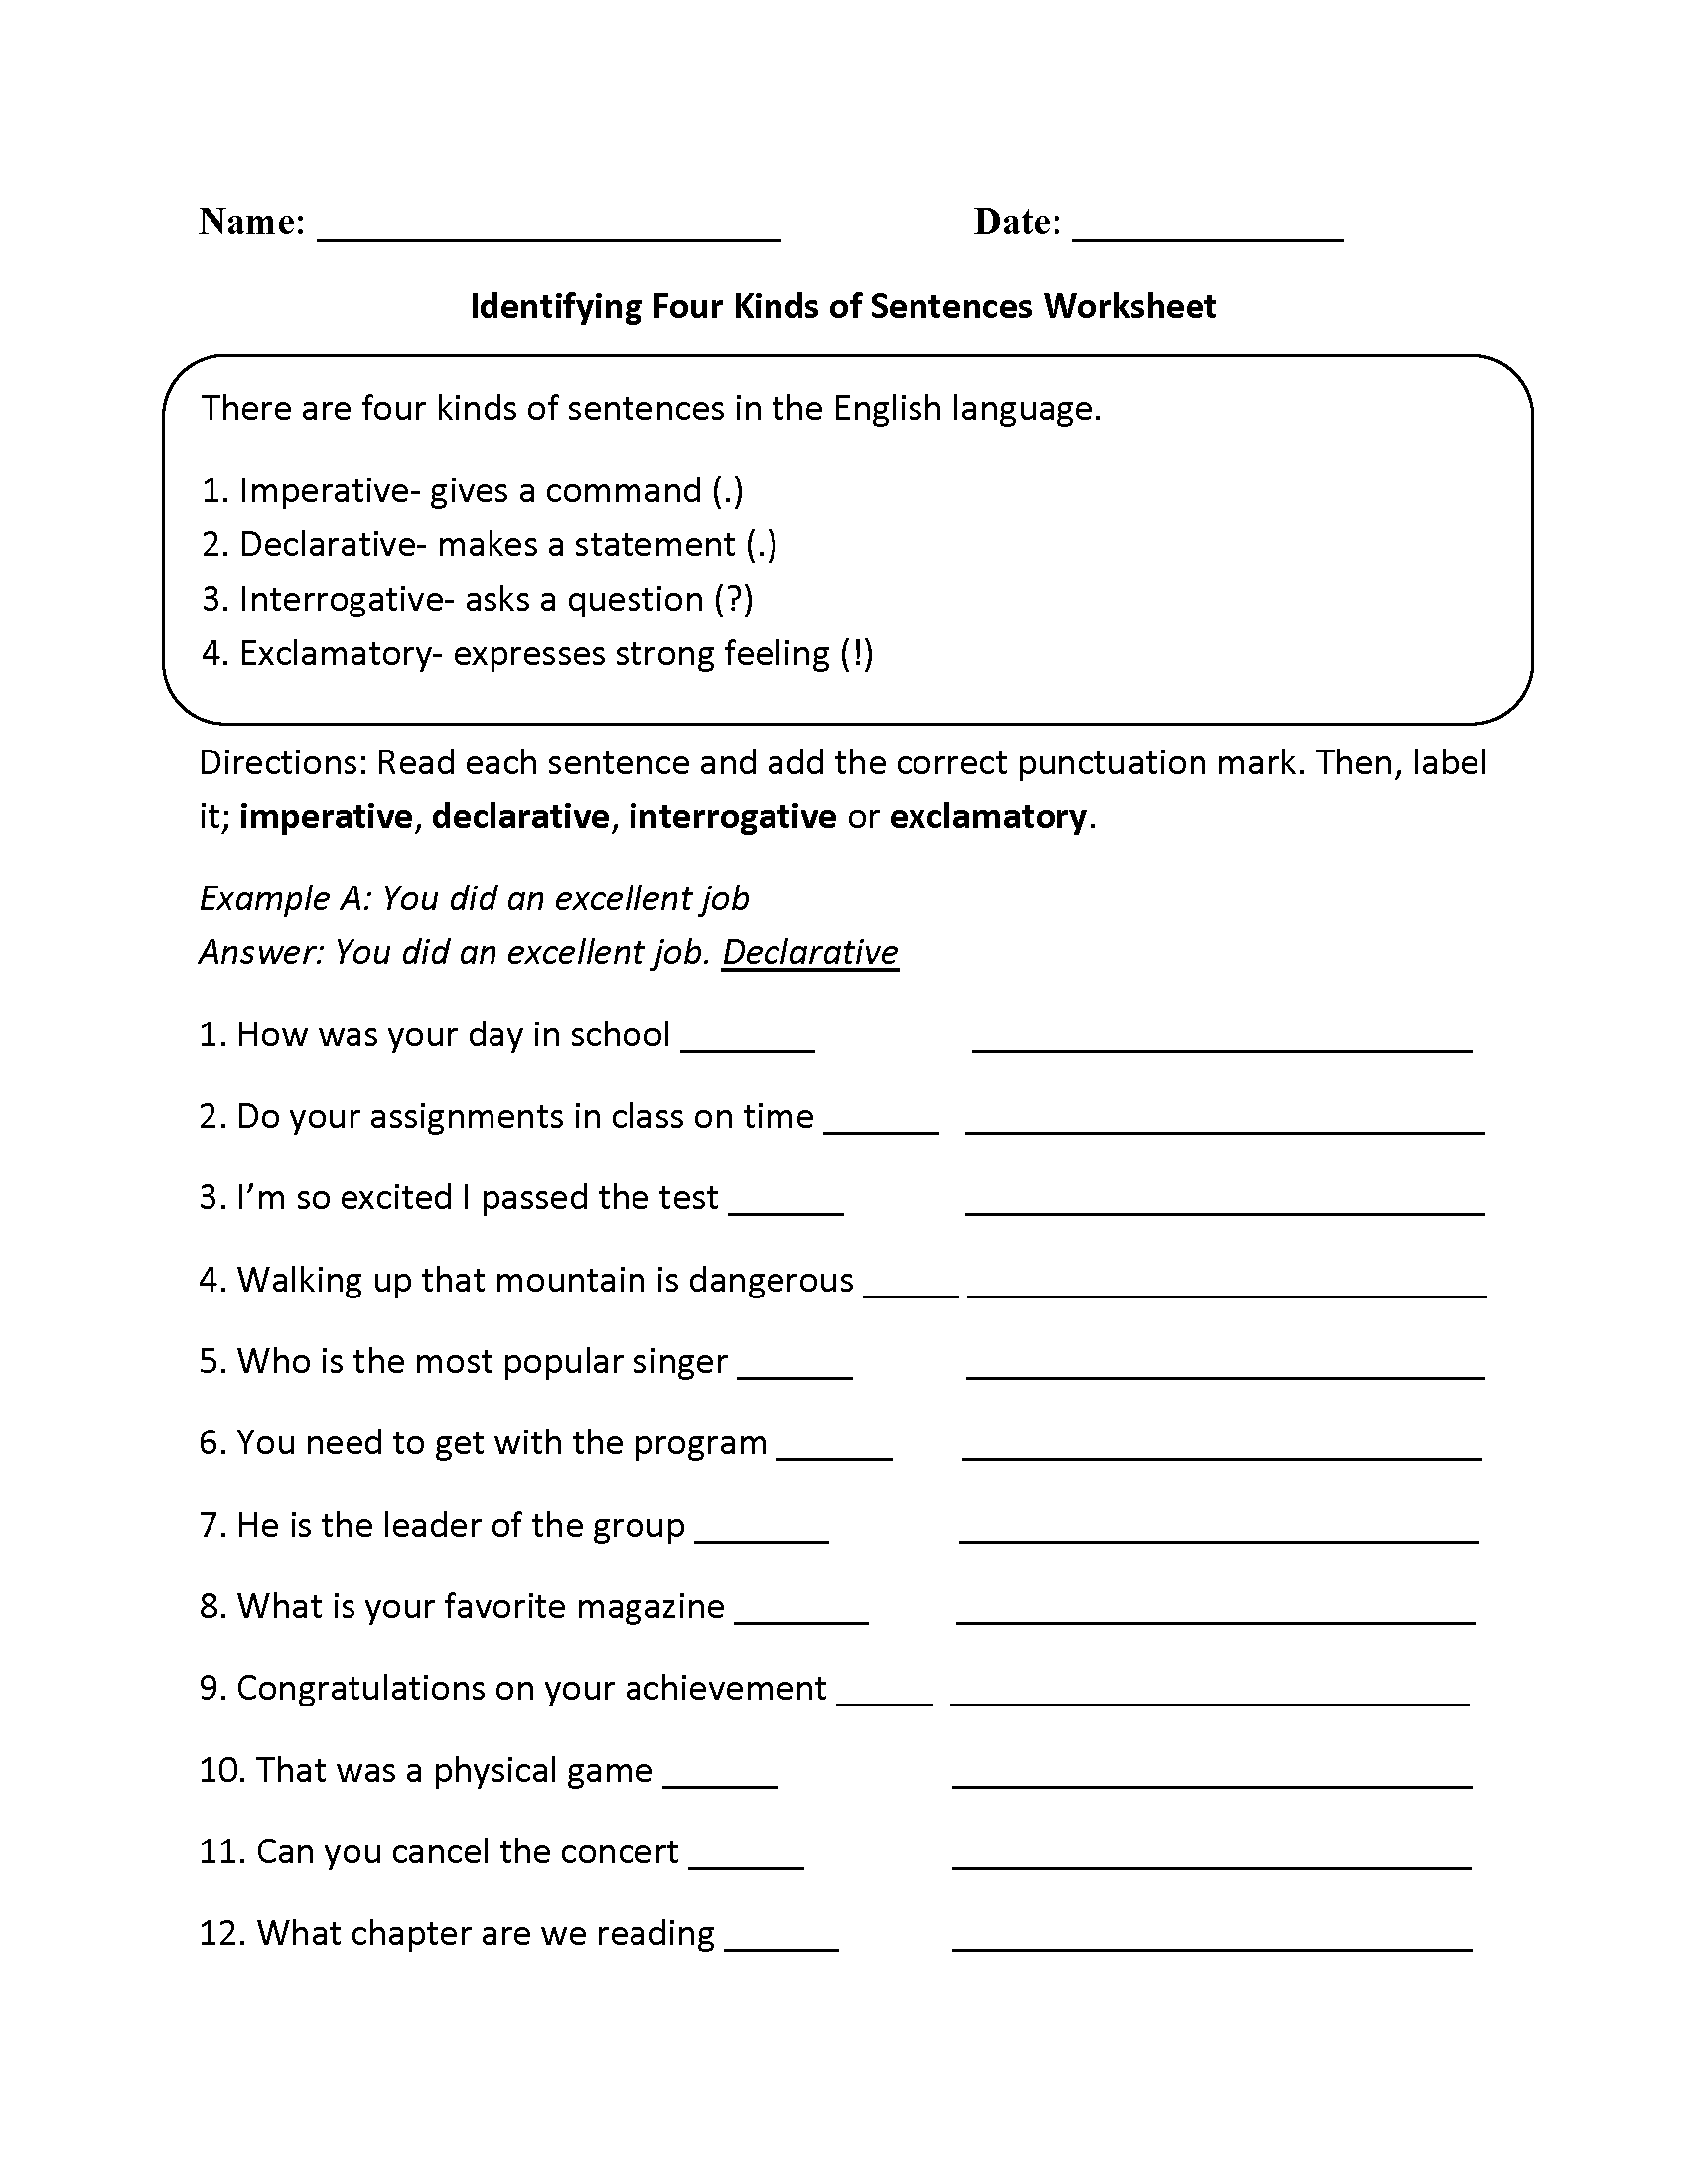 Worksheets Four Kinds Of Sentences Worksheets kinds of sentences worksheets practicing four worksheet